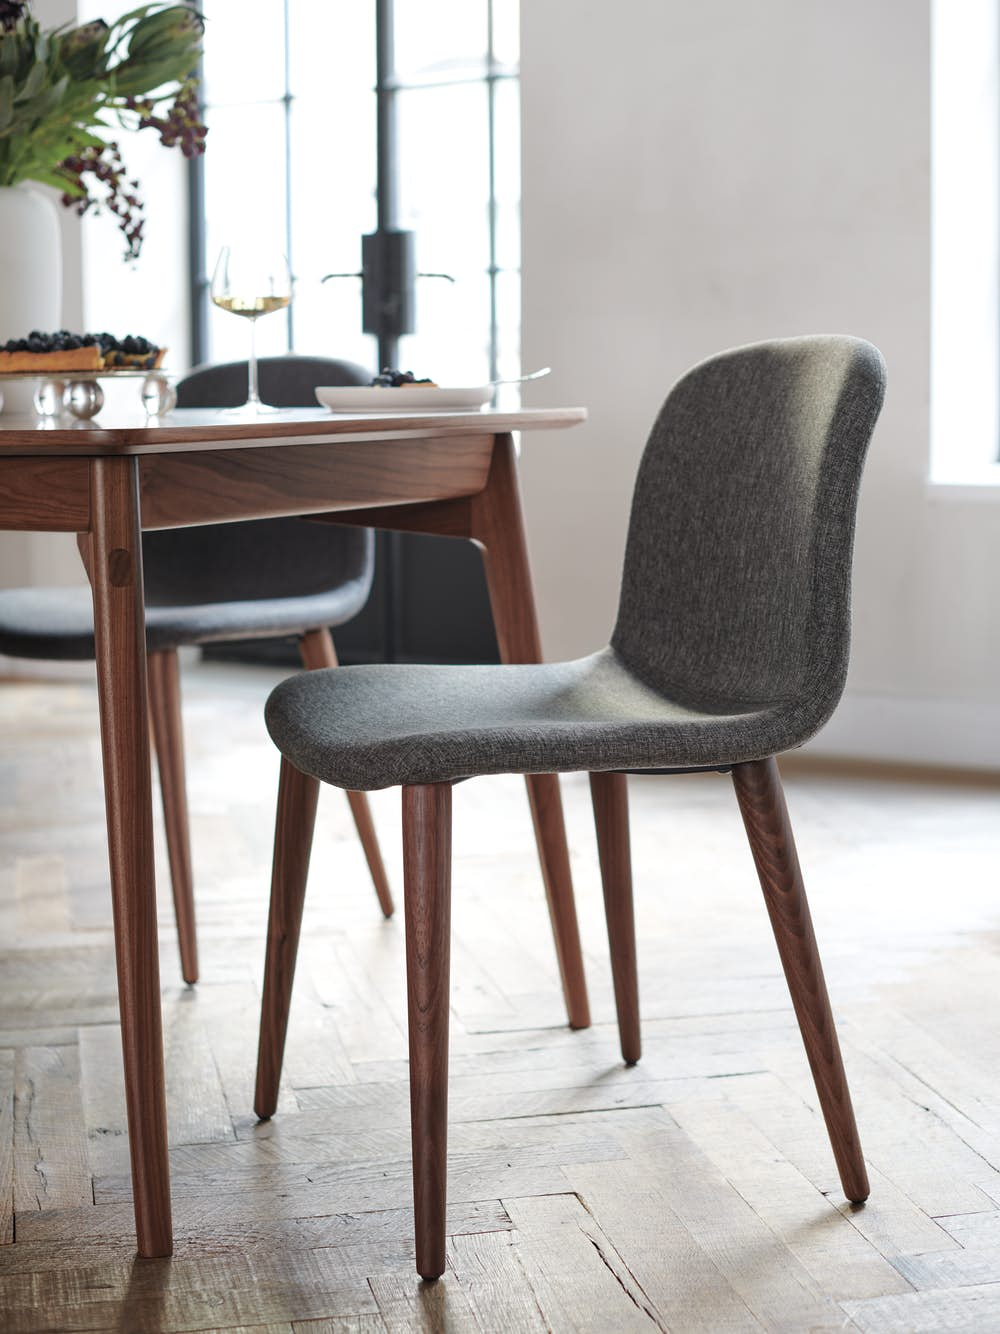 Bacco Chair in Duet Night at dining table